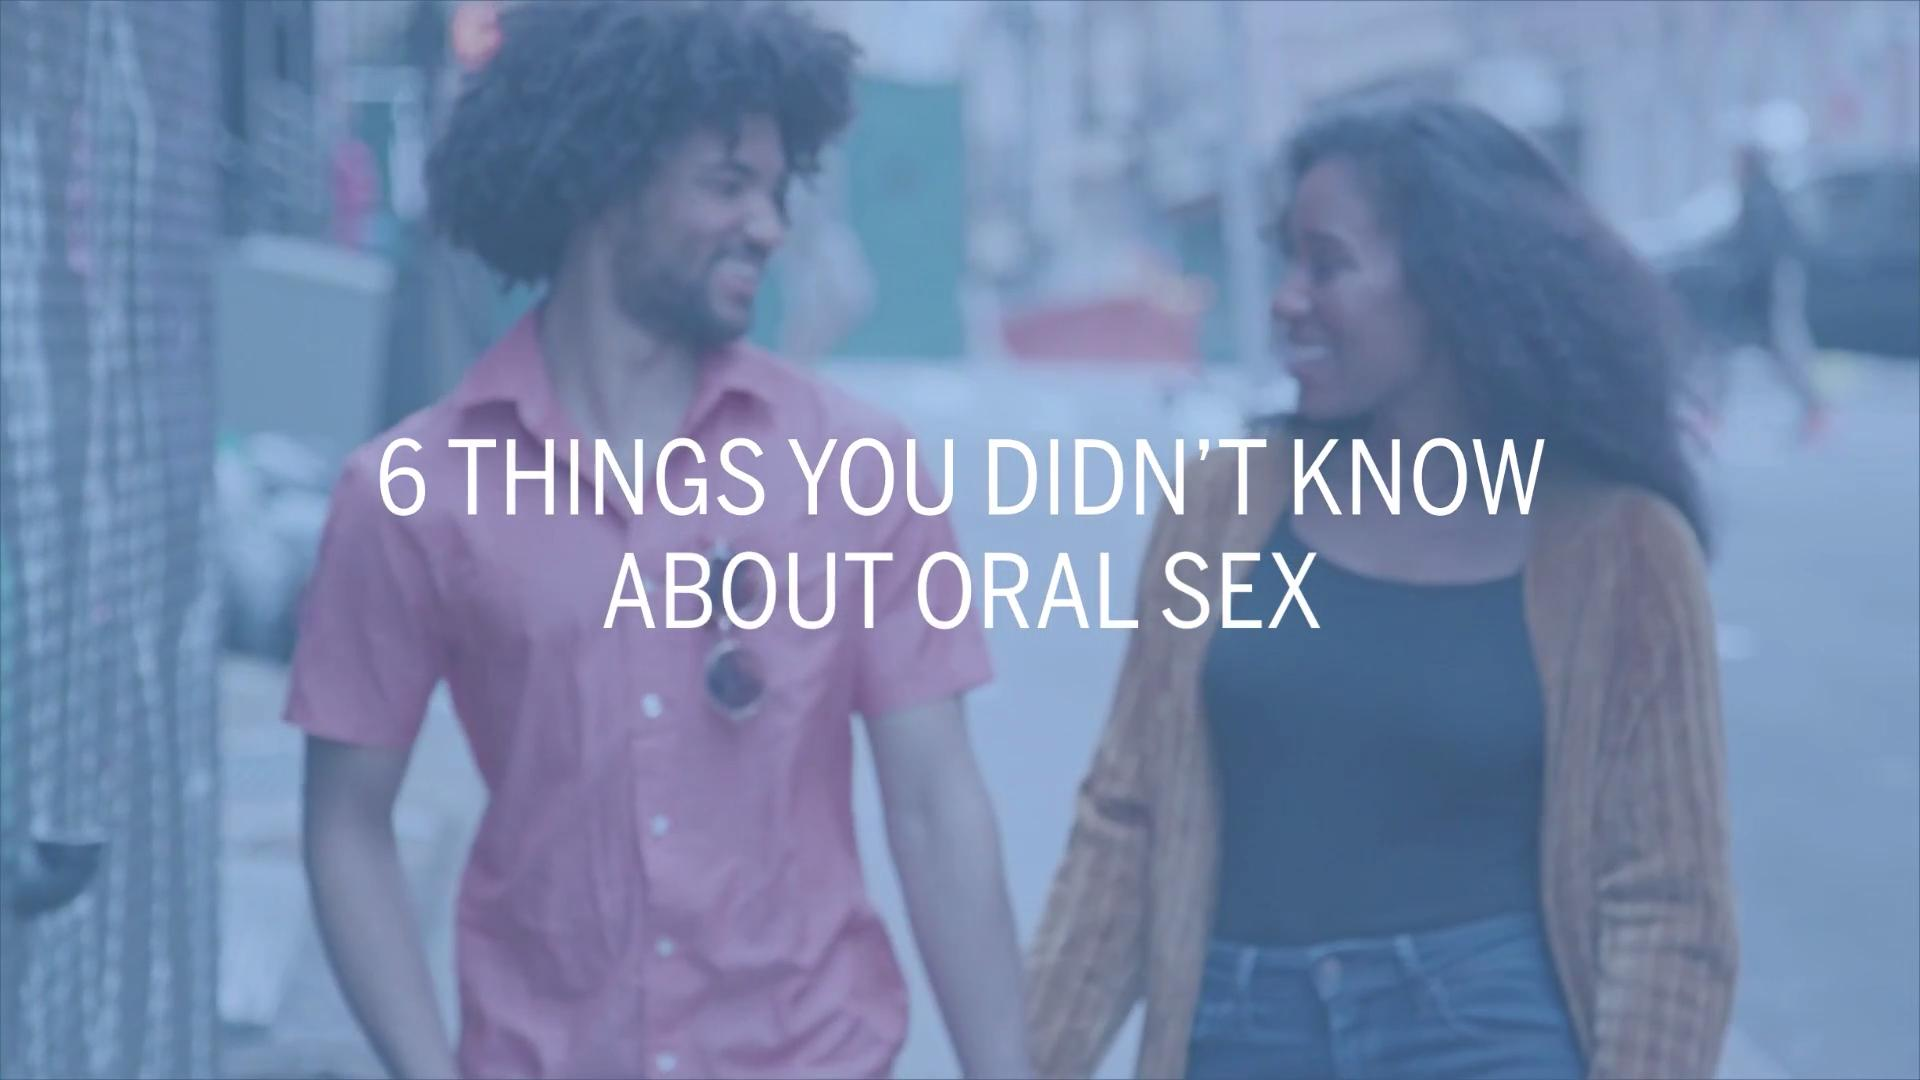 You're Putting Too Much Effort into Giving Oral Sex, According to Men